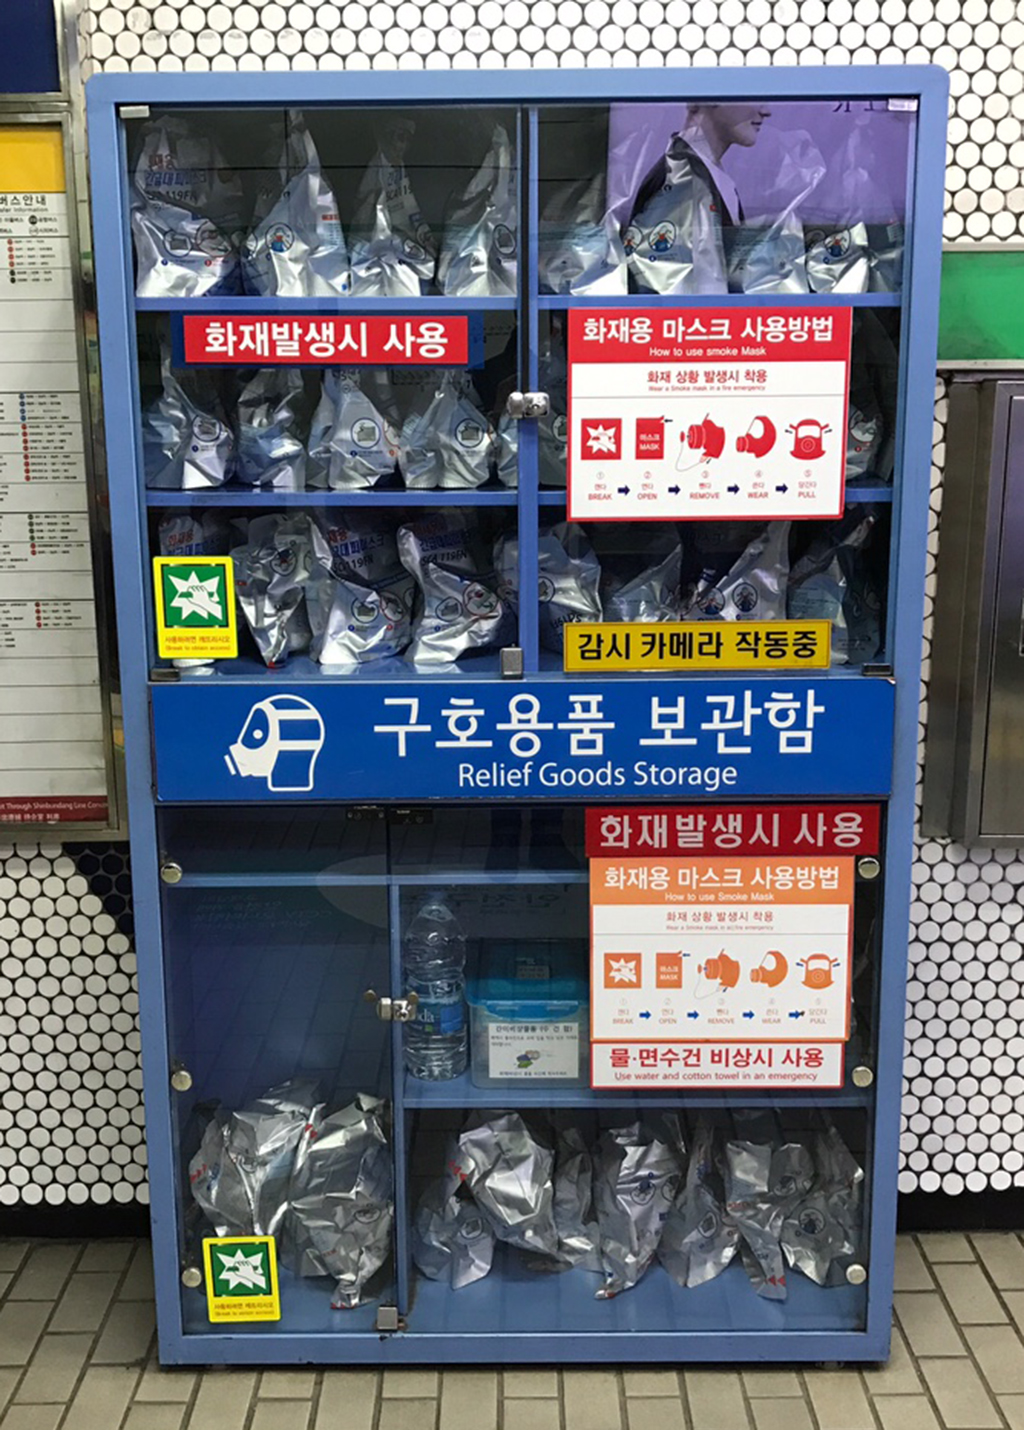 Supplies for Seoul locals fleeing an attack. (Tom Steinfort)